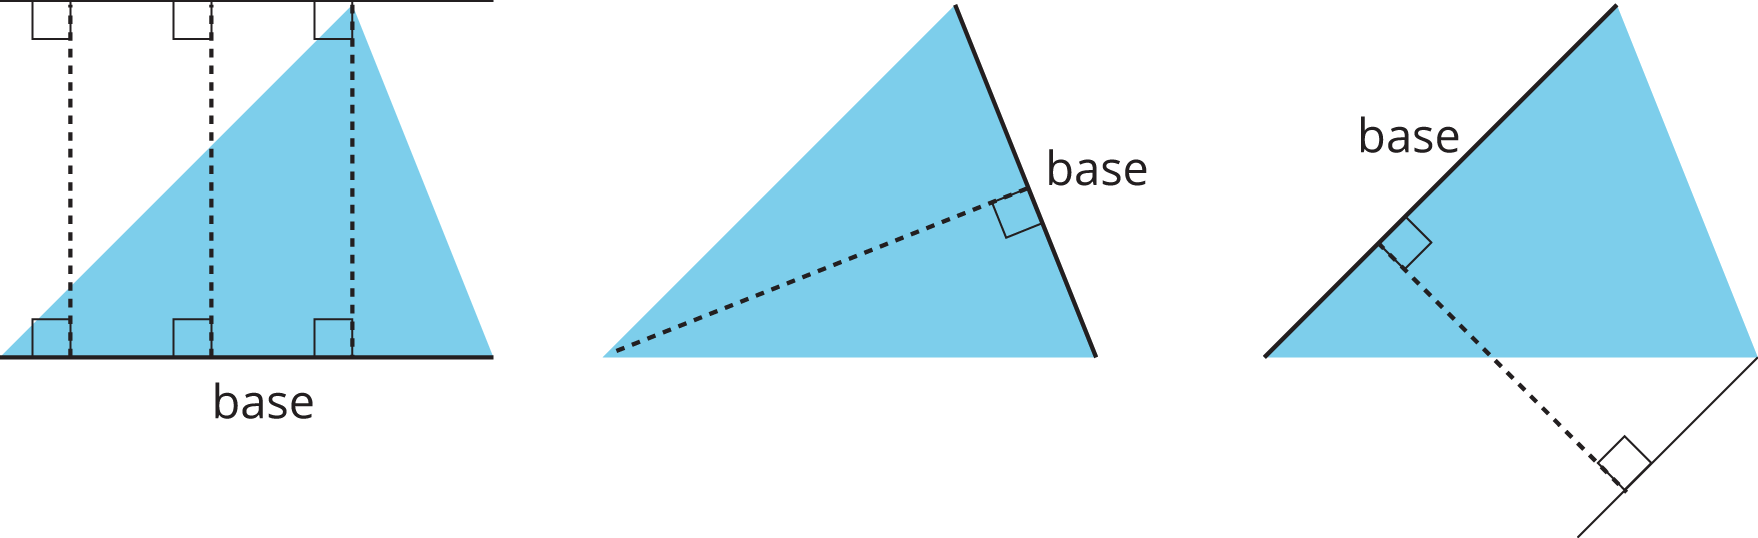 Three copies of a triangle. Each copy shows a different base and height pair.